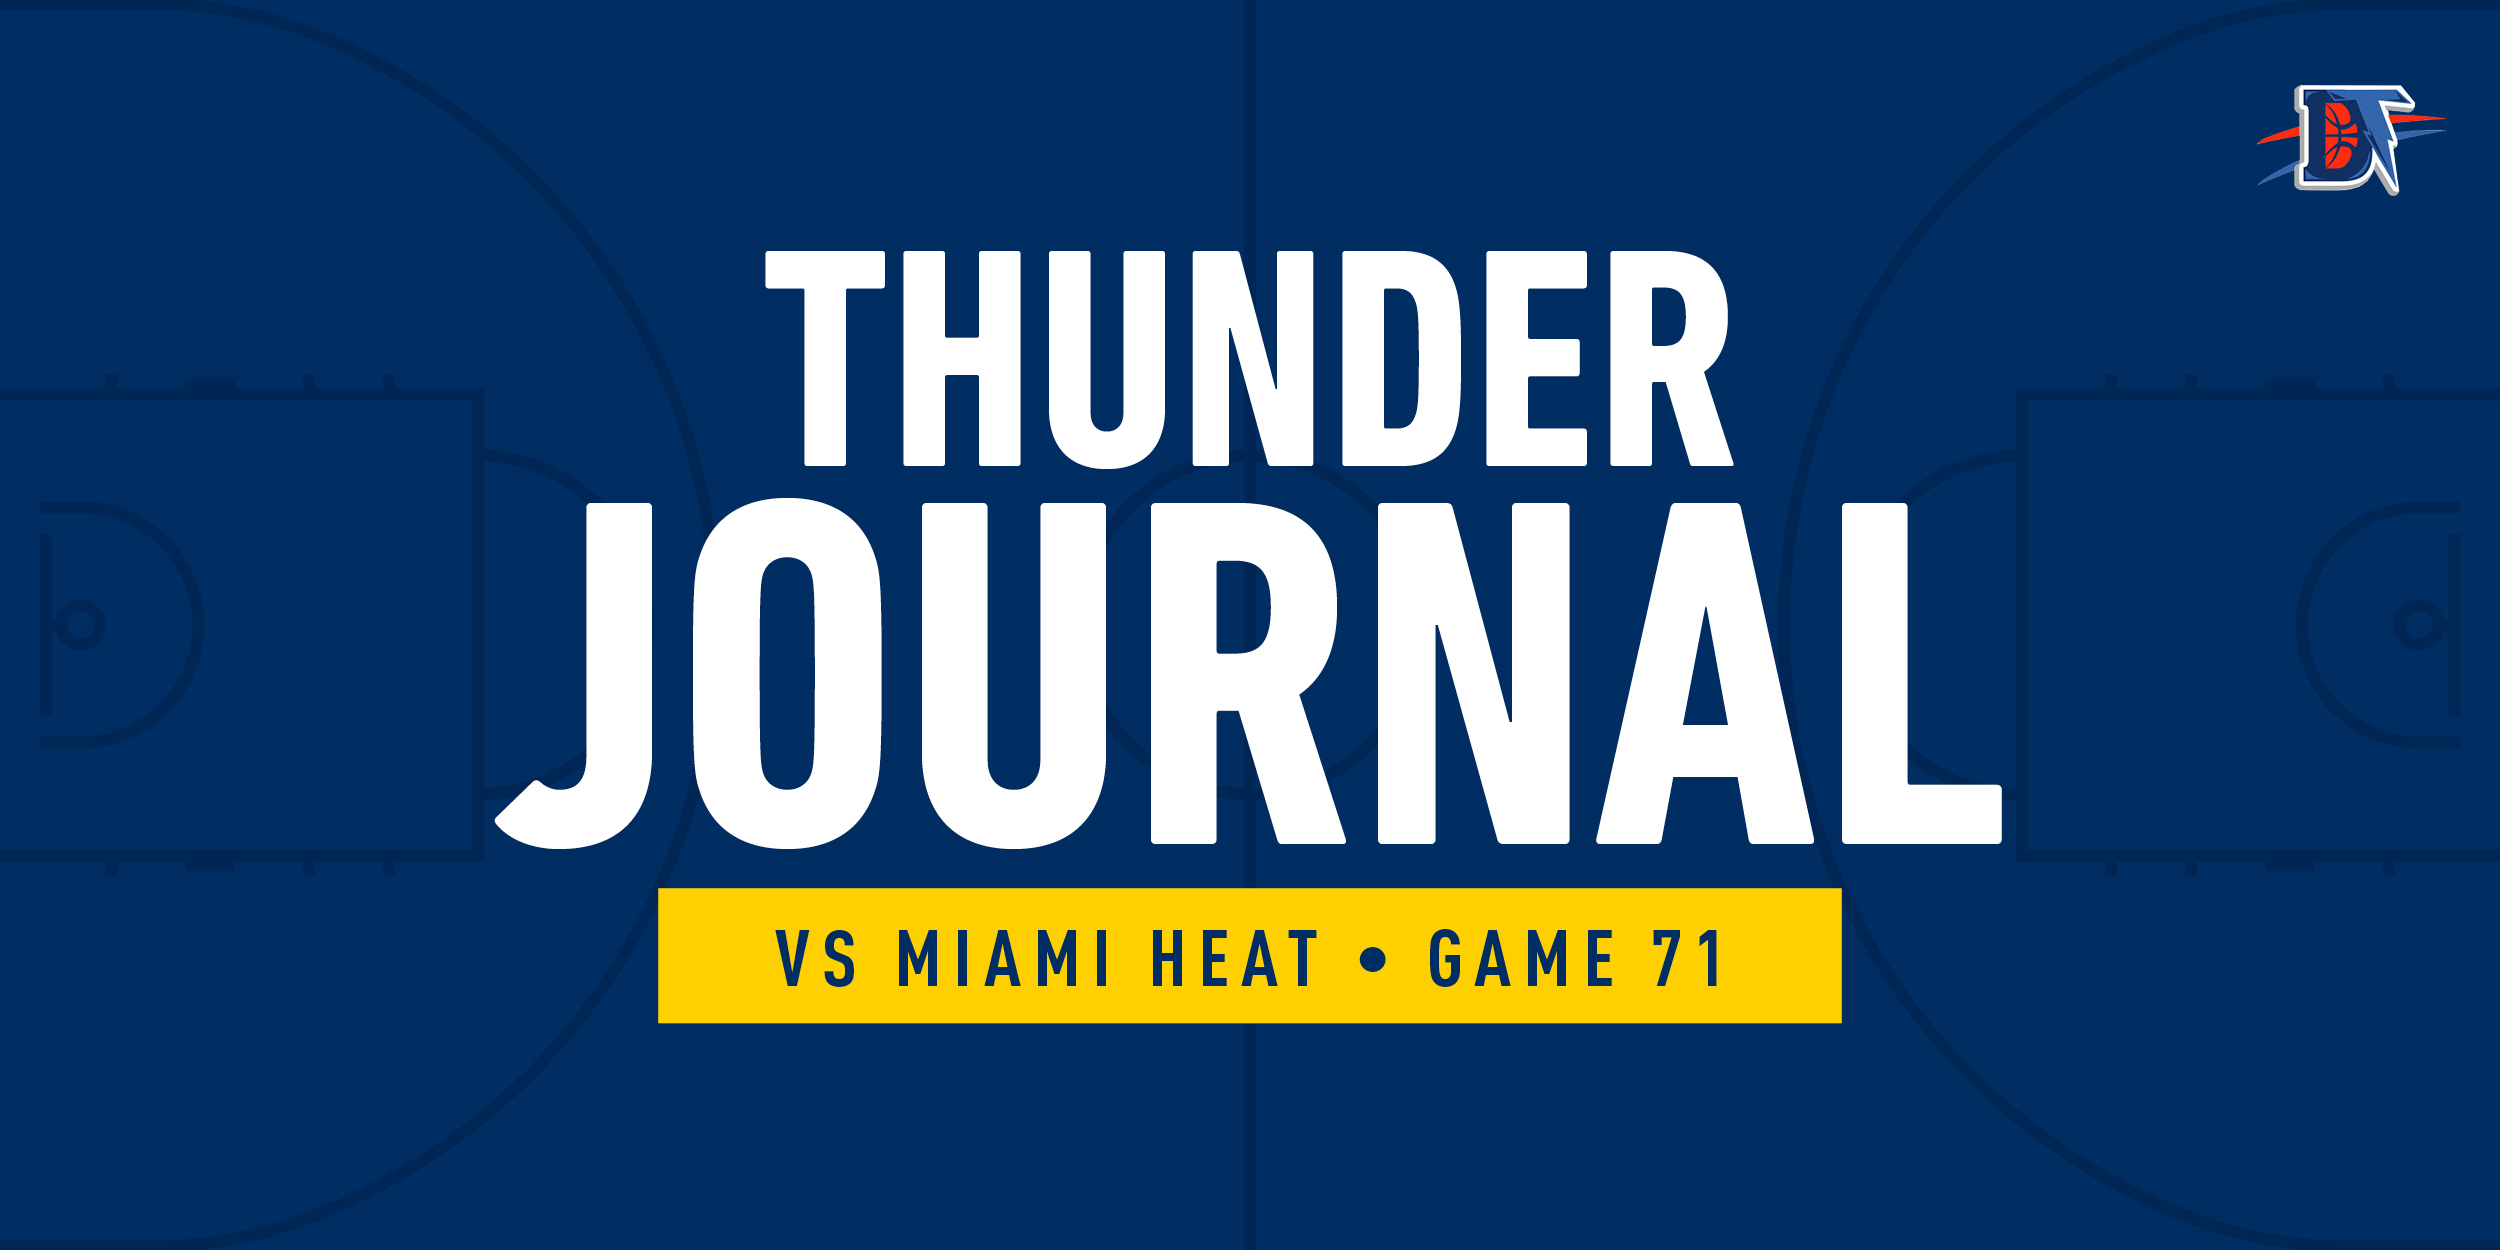 Thunder Journal: OKC Beats Heat 116-115. Thunder Wins Game, Loses Draft Pick